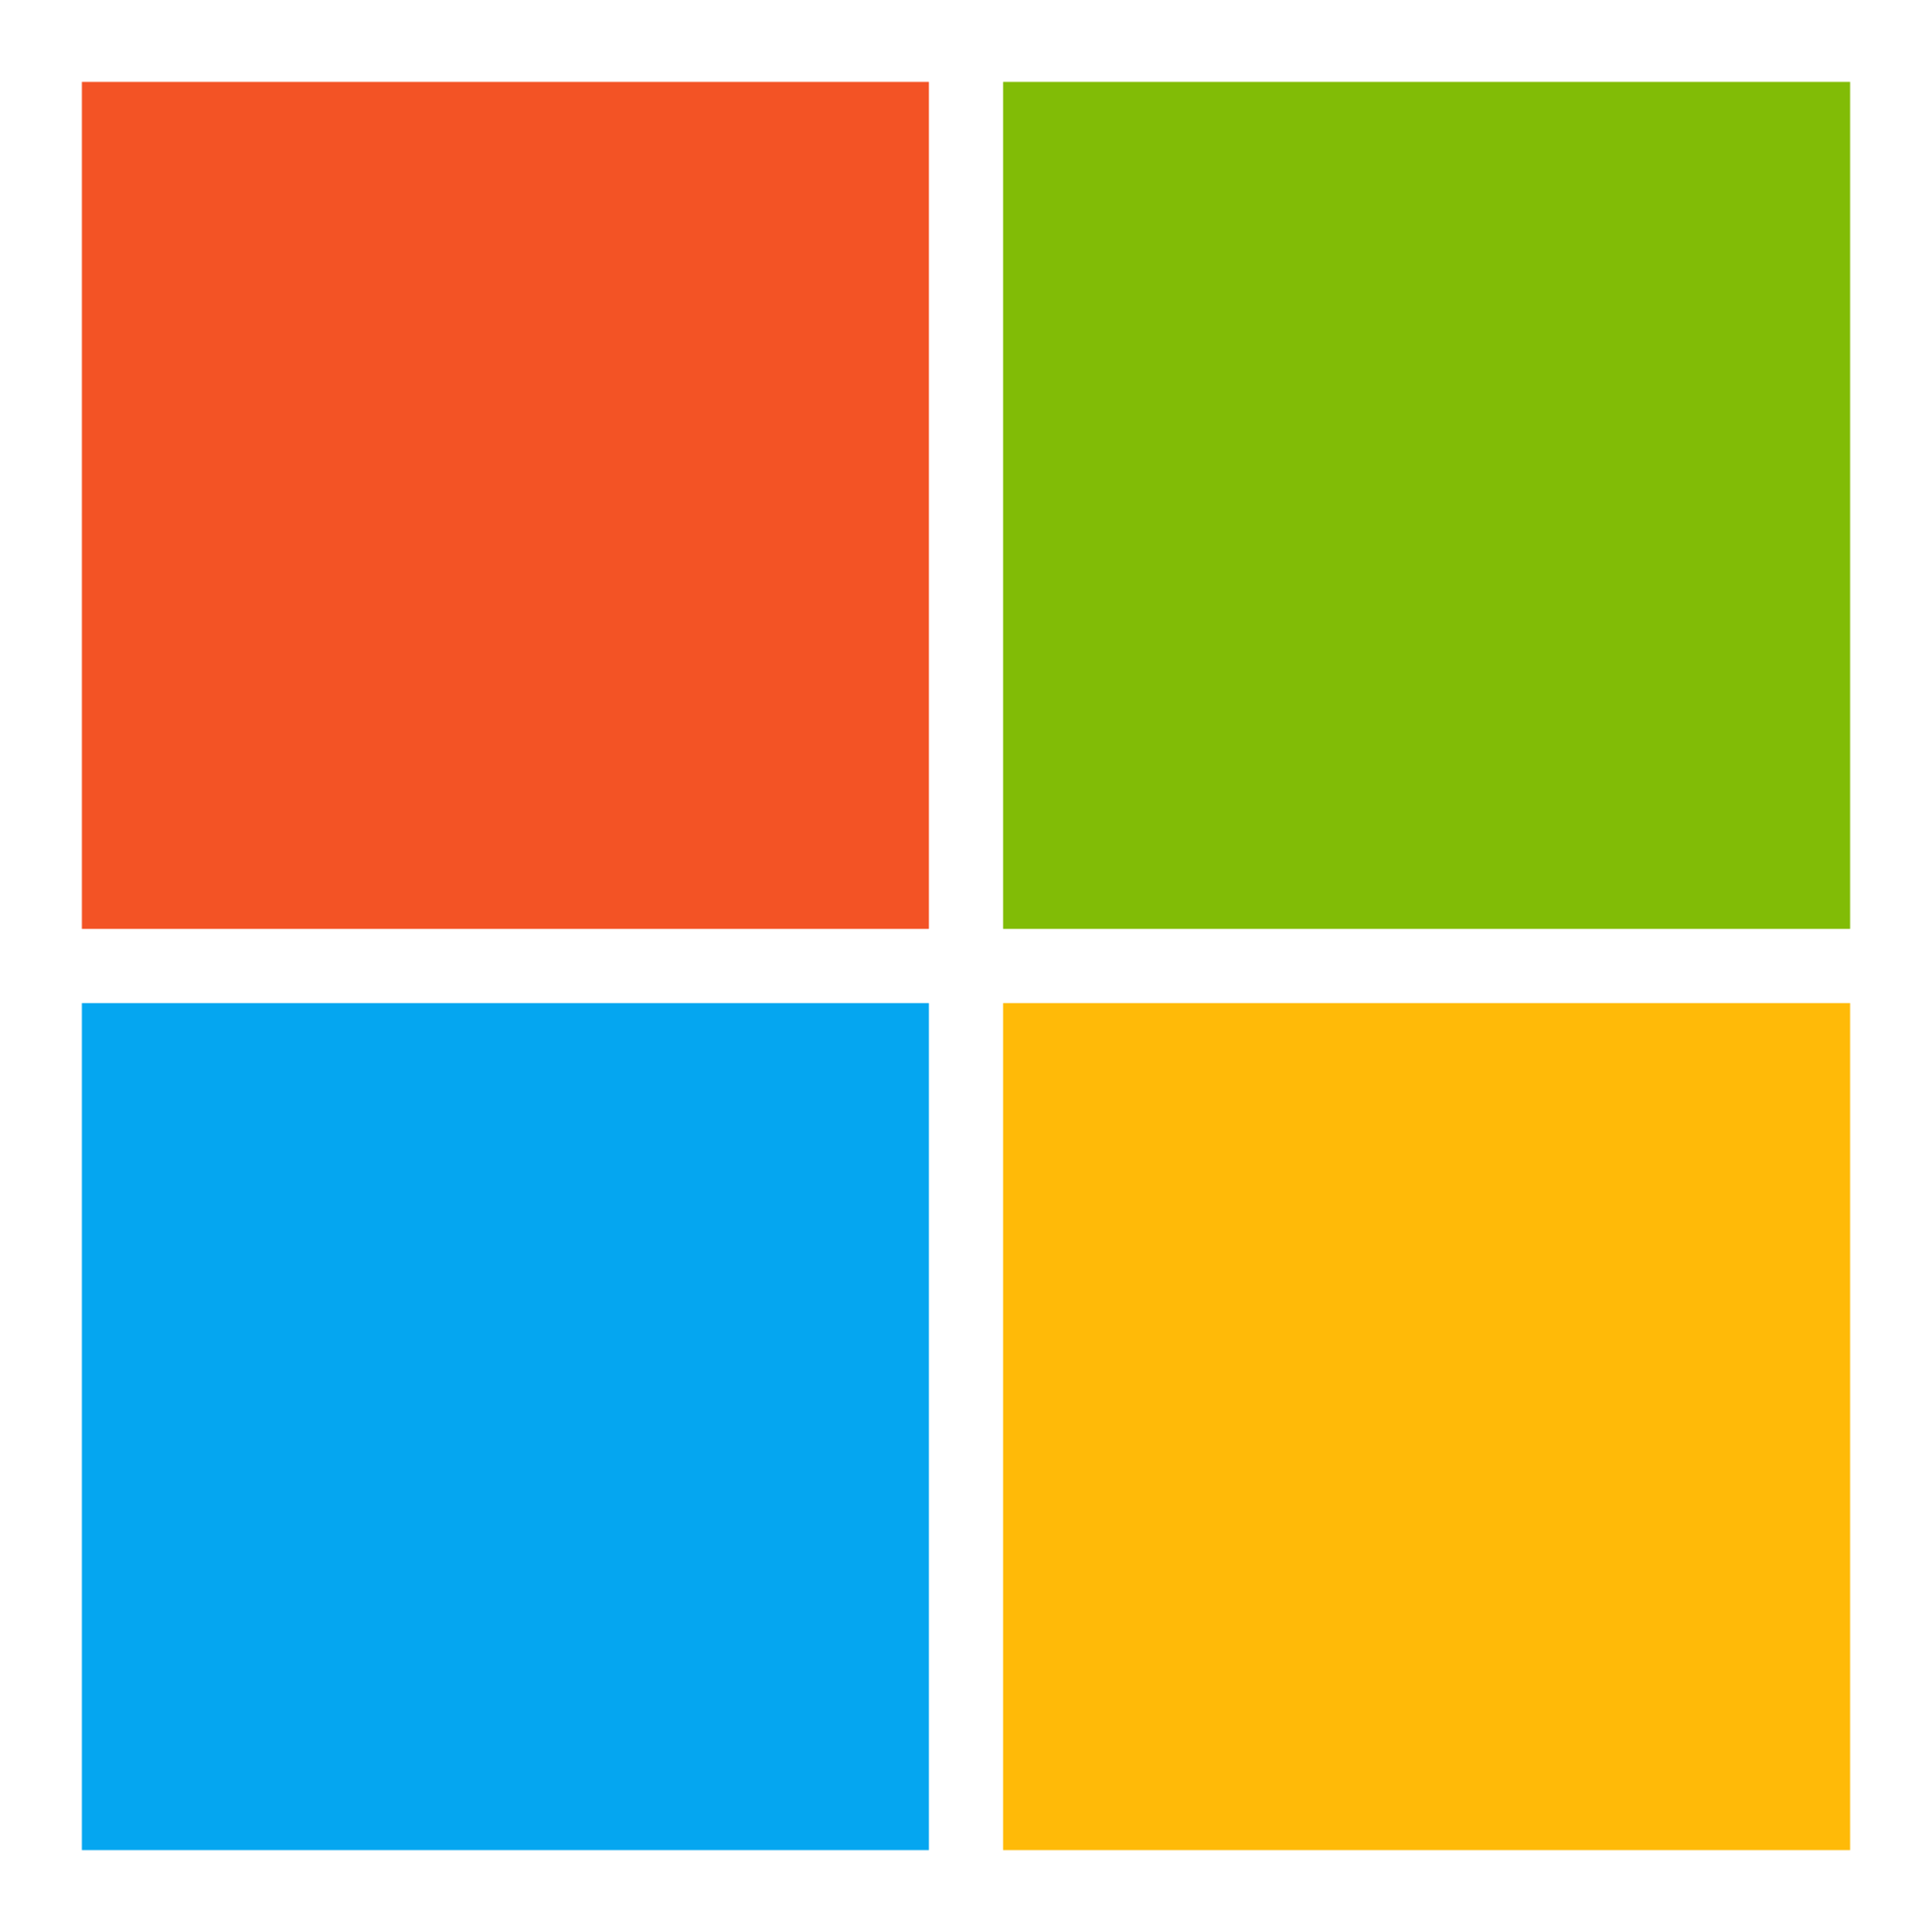 Meetric will soon integrate with Microsoft/Outlook